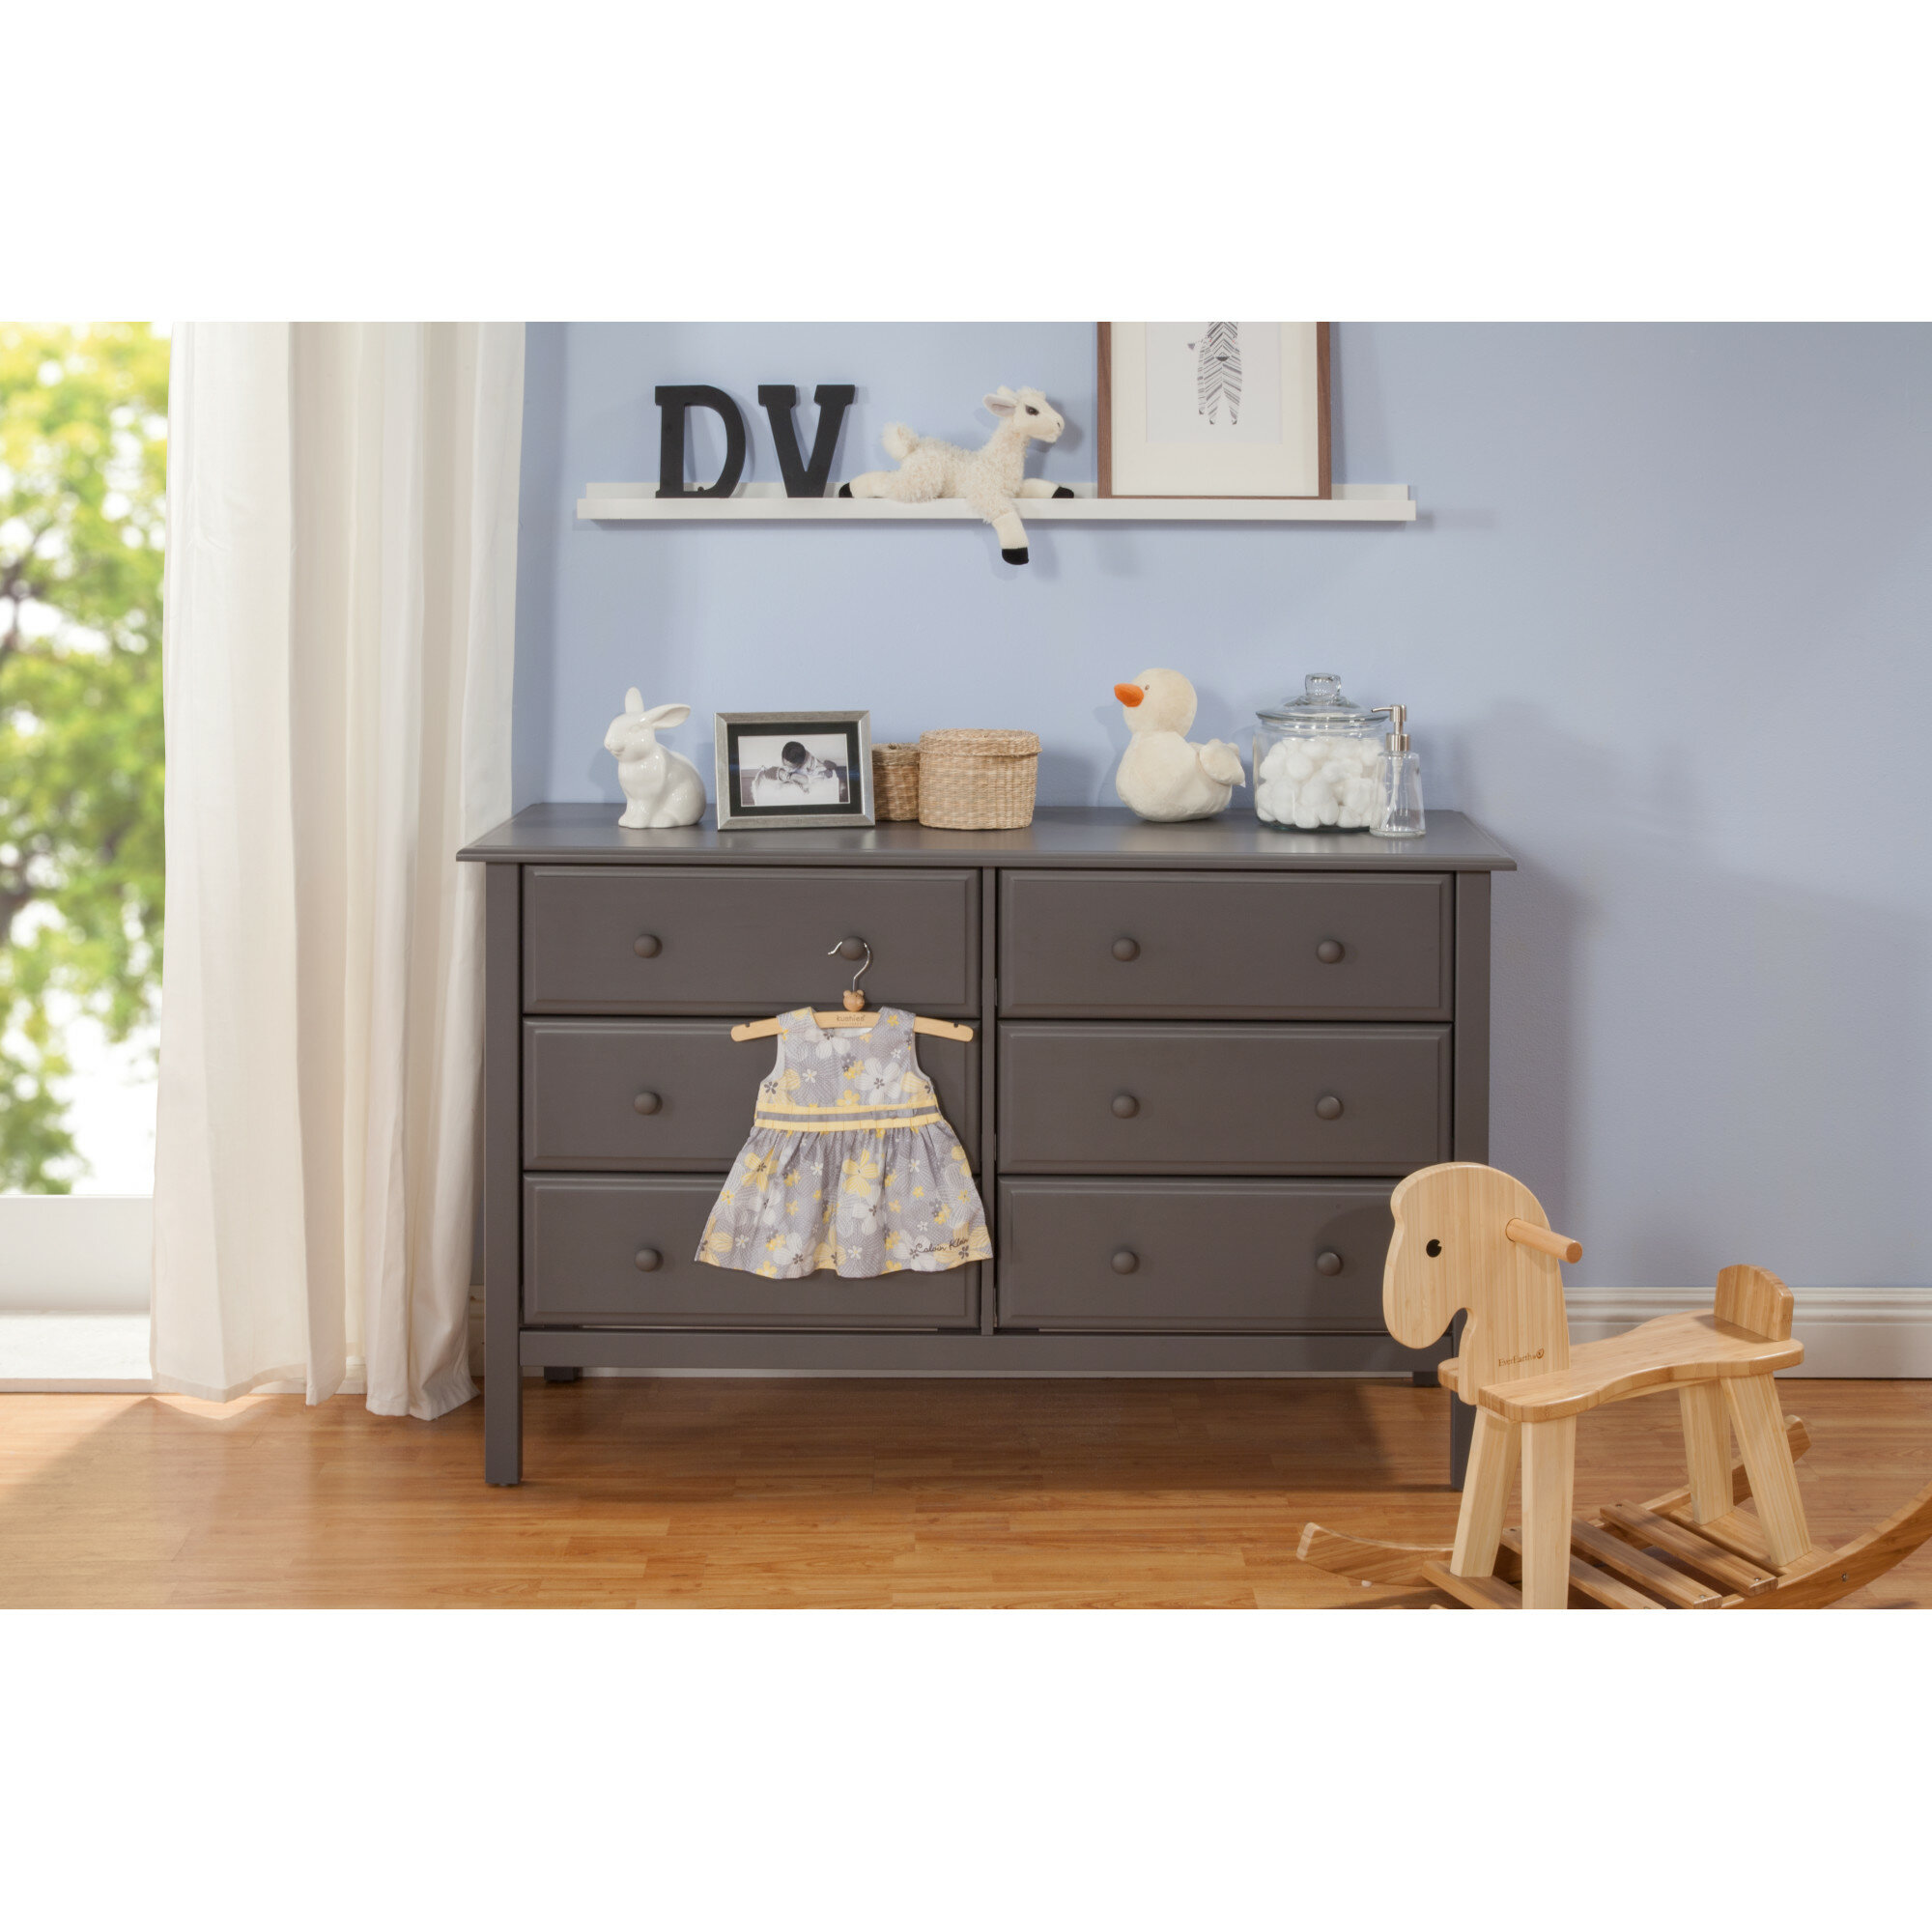 cribs nice for kalani ceiling with fan baby bedroom stores cache dresser inspiring and me crib munire wood near ideas interesting buy gray davinci lowes design flooring nursery tropical cozy furniture on